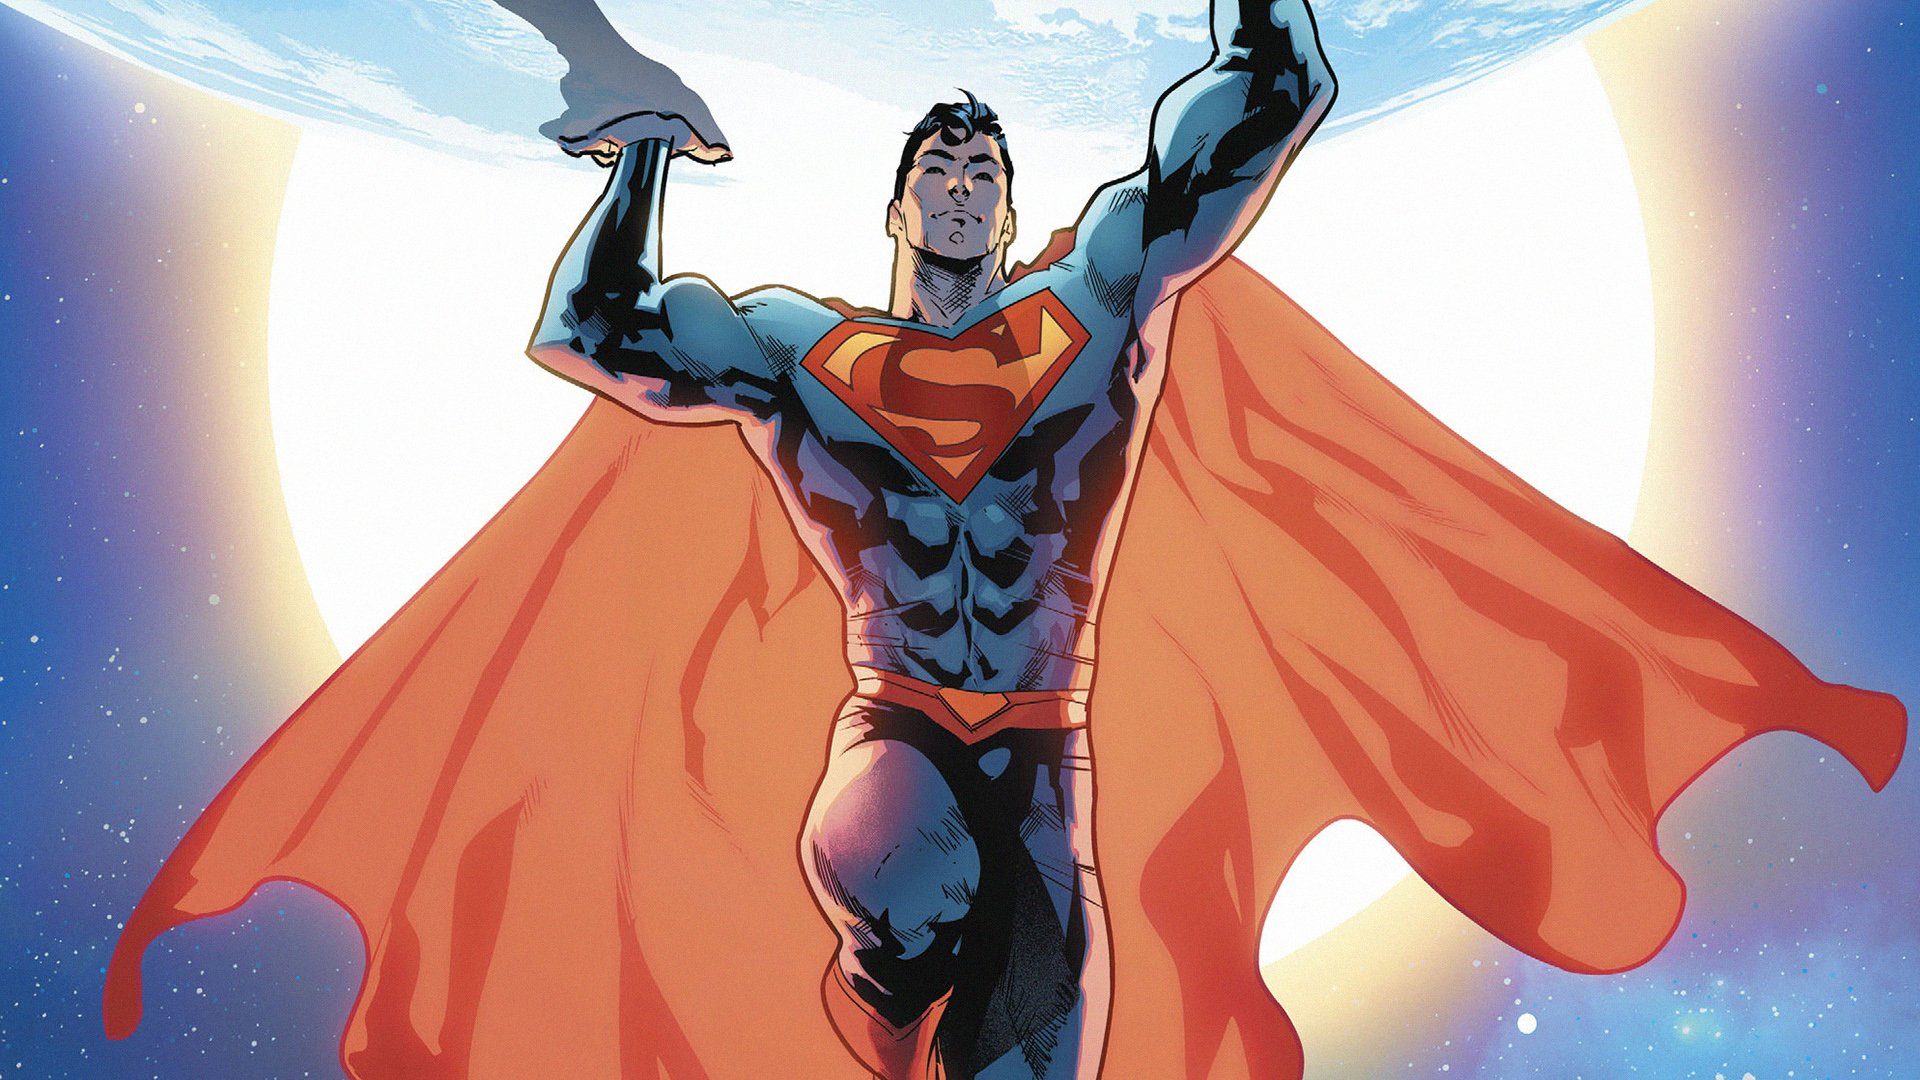 Superman holding up the world.jpg